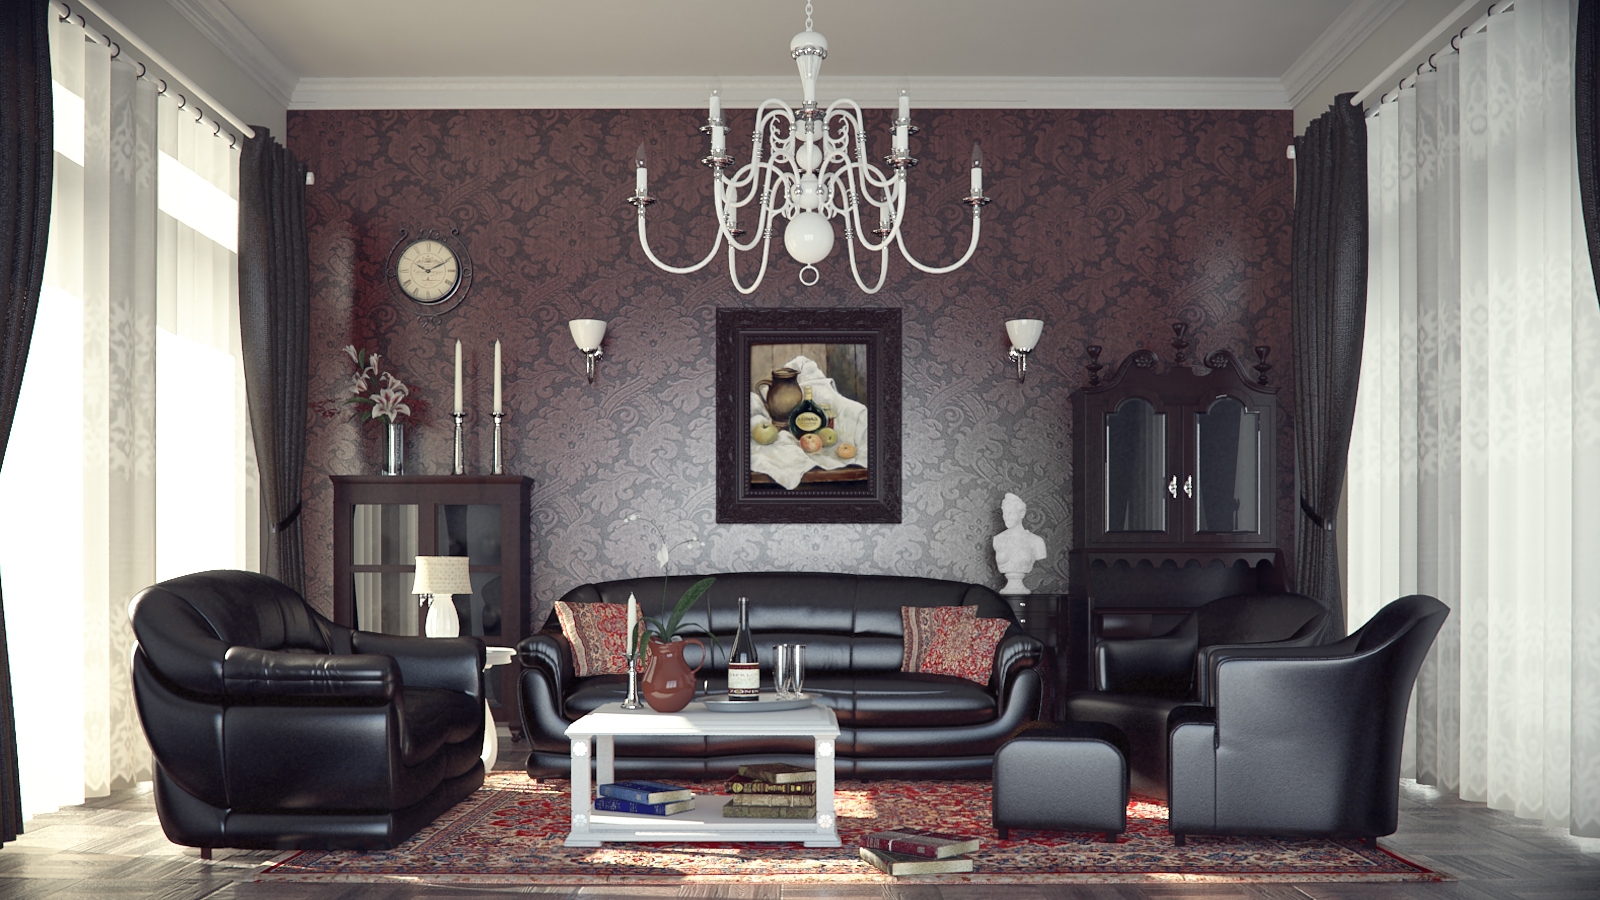 classic style chandelier and wallpaper pattern are made modern